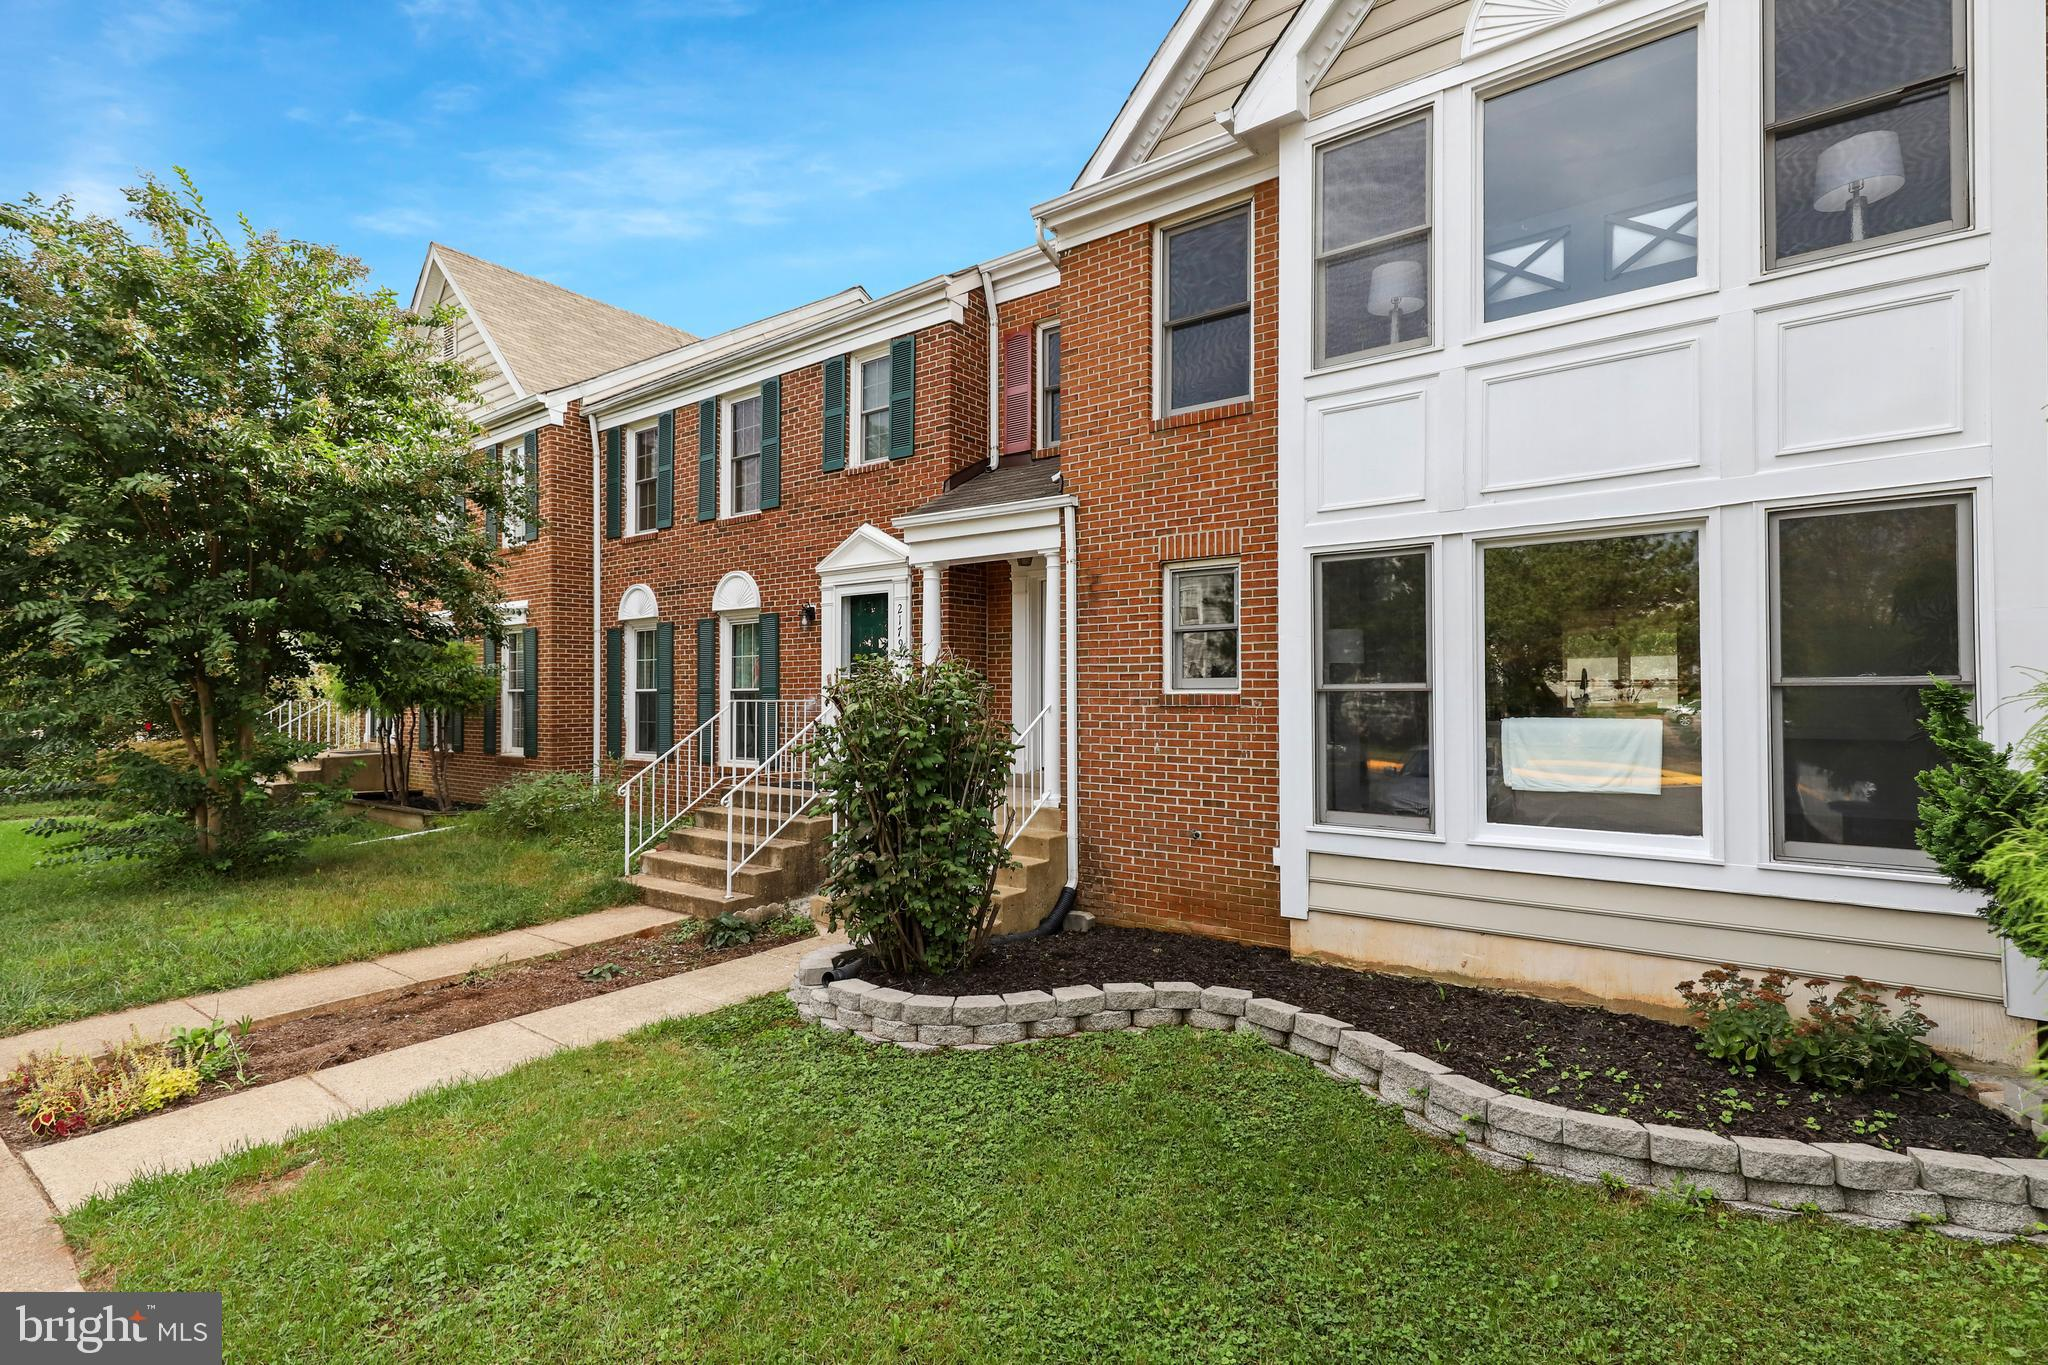 Beautiful 3 Bed 3.5 bath townhome located in the Woodstone community of Sterling! This lovely home b